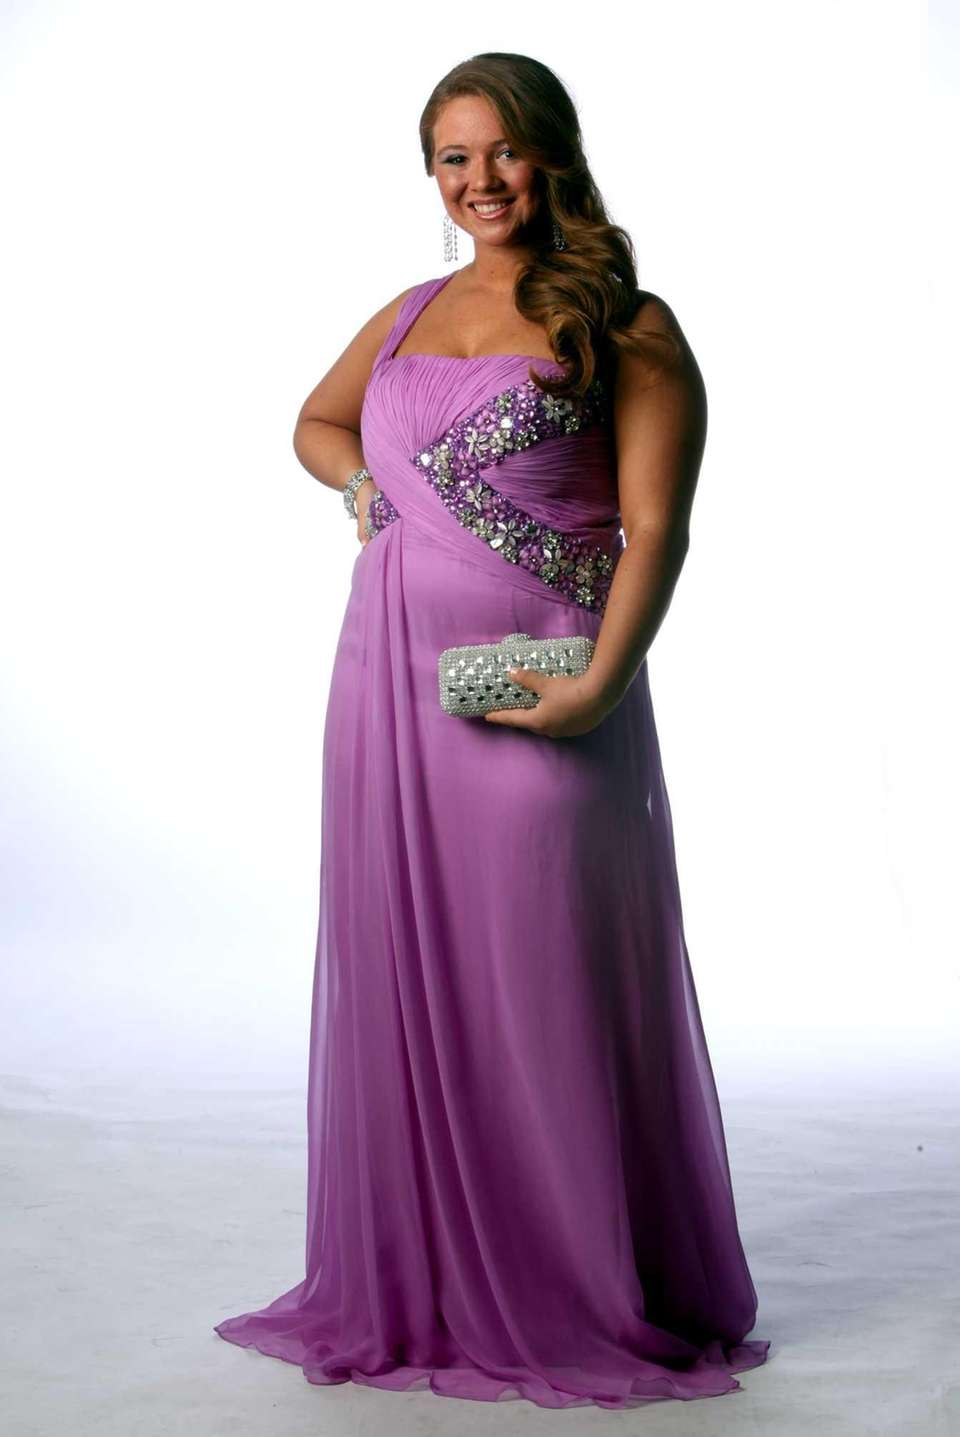 4. The Babe Project Prom girl Danielle